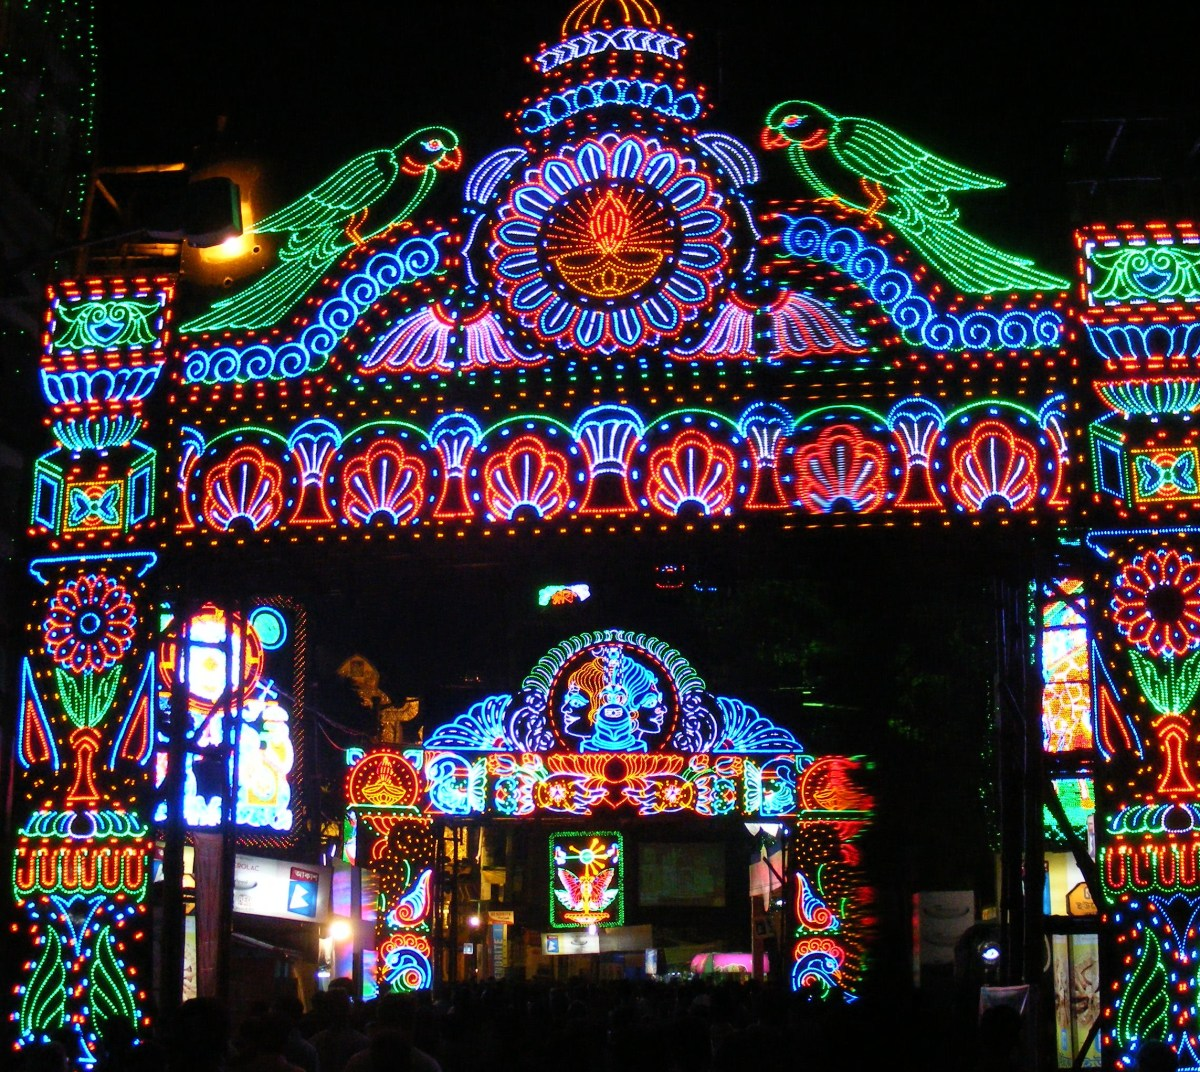 Street lighting during Durga pooja celebrations in Calcutta.